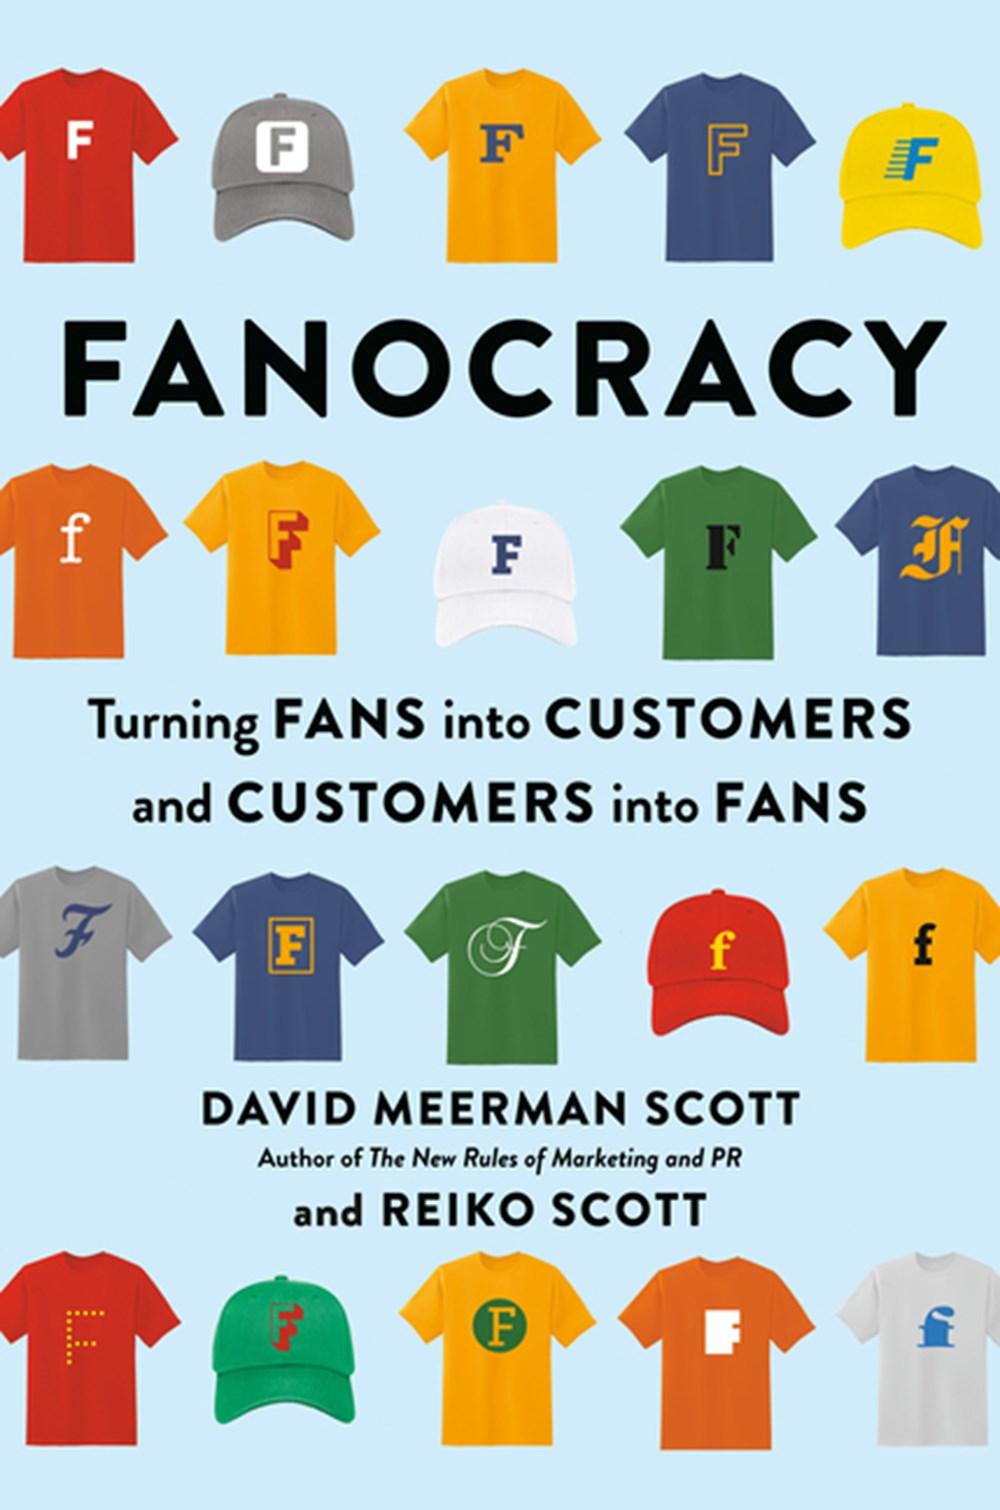 Fanocracy Turning Fans Into Customers and Customers Into Fans